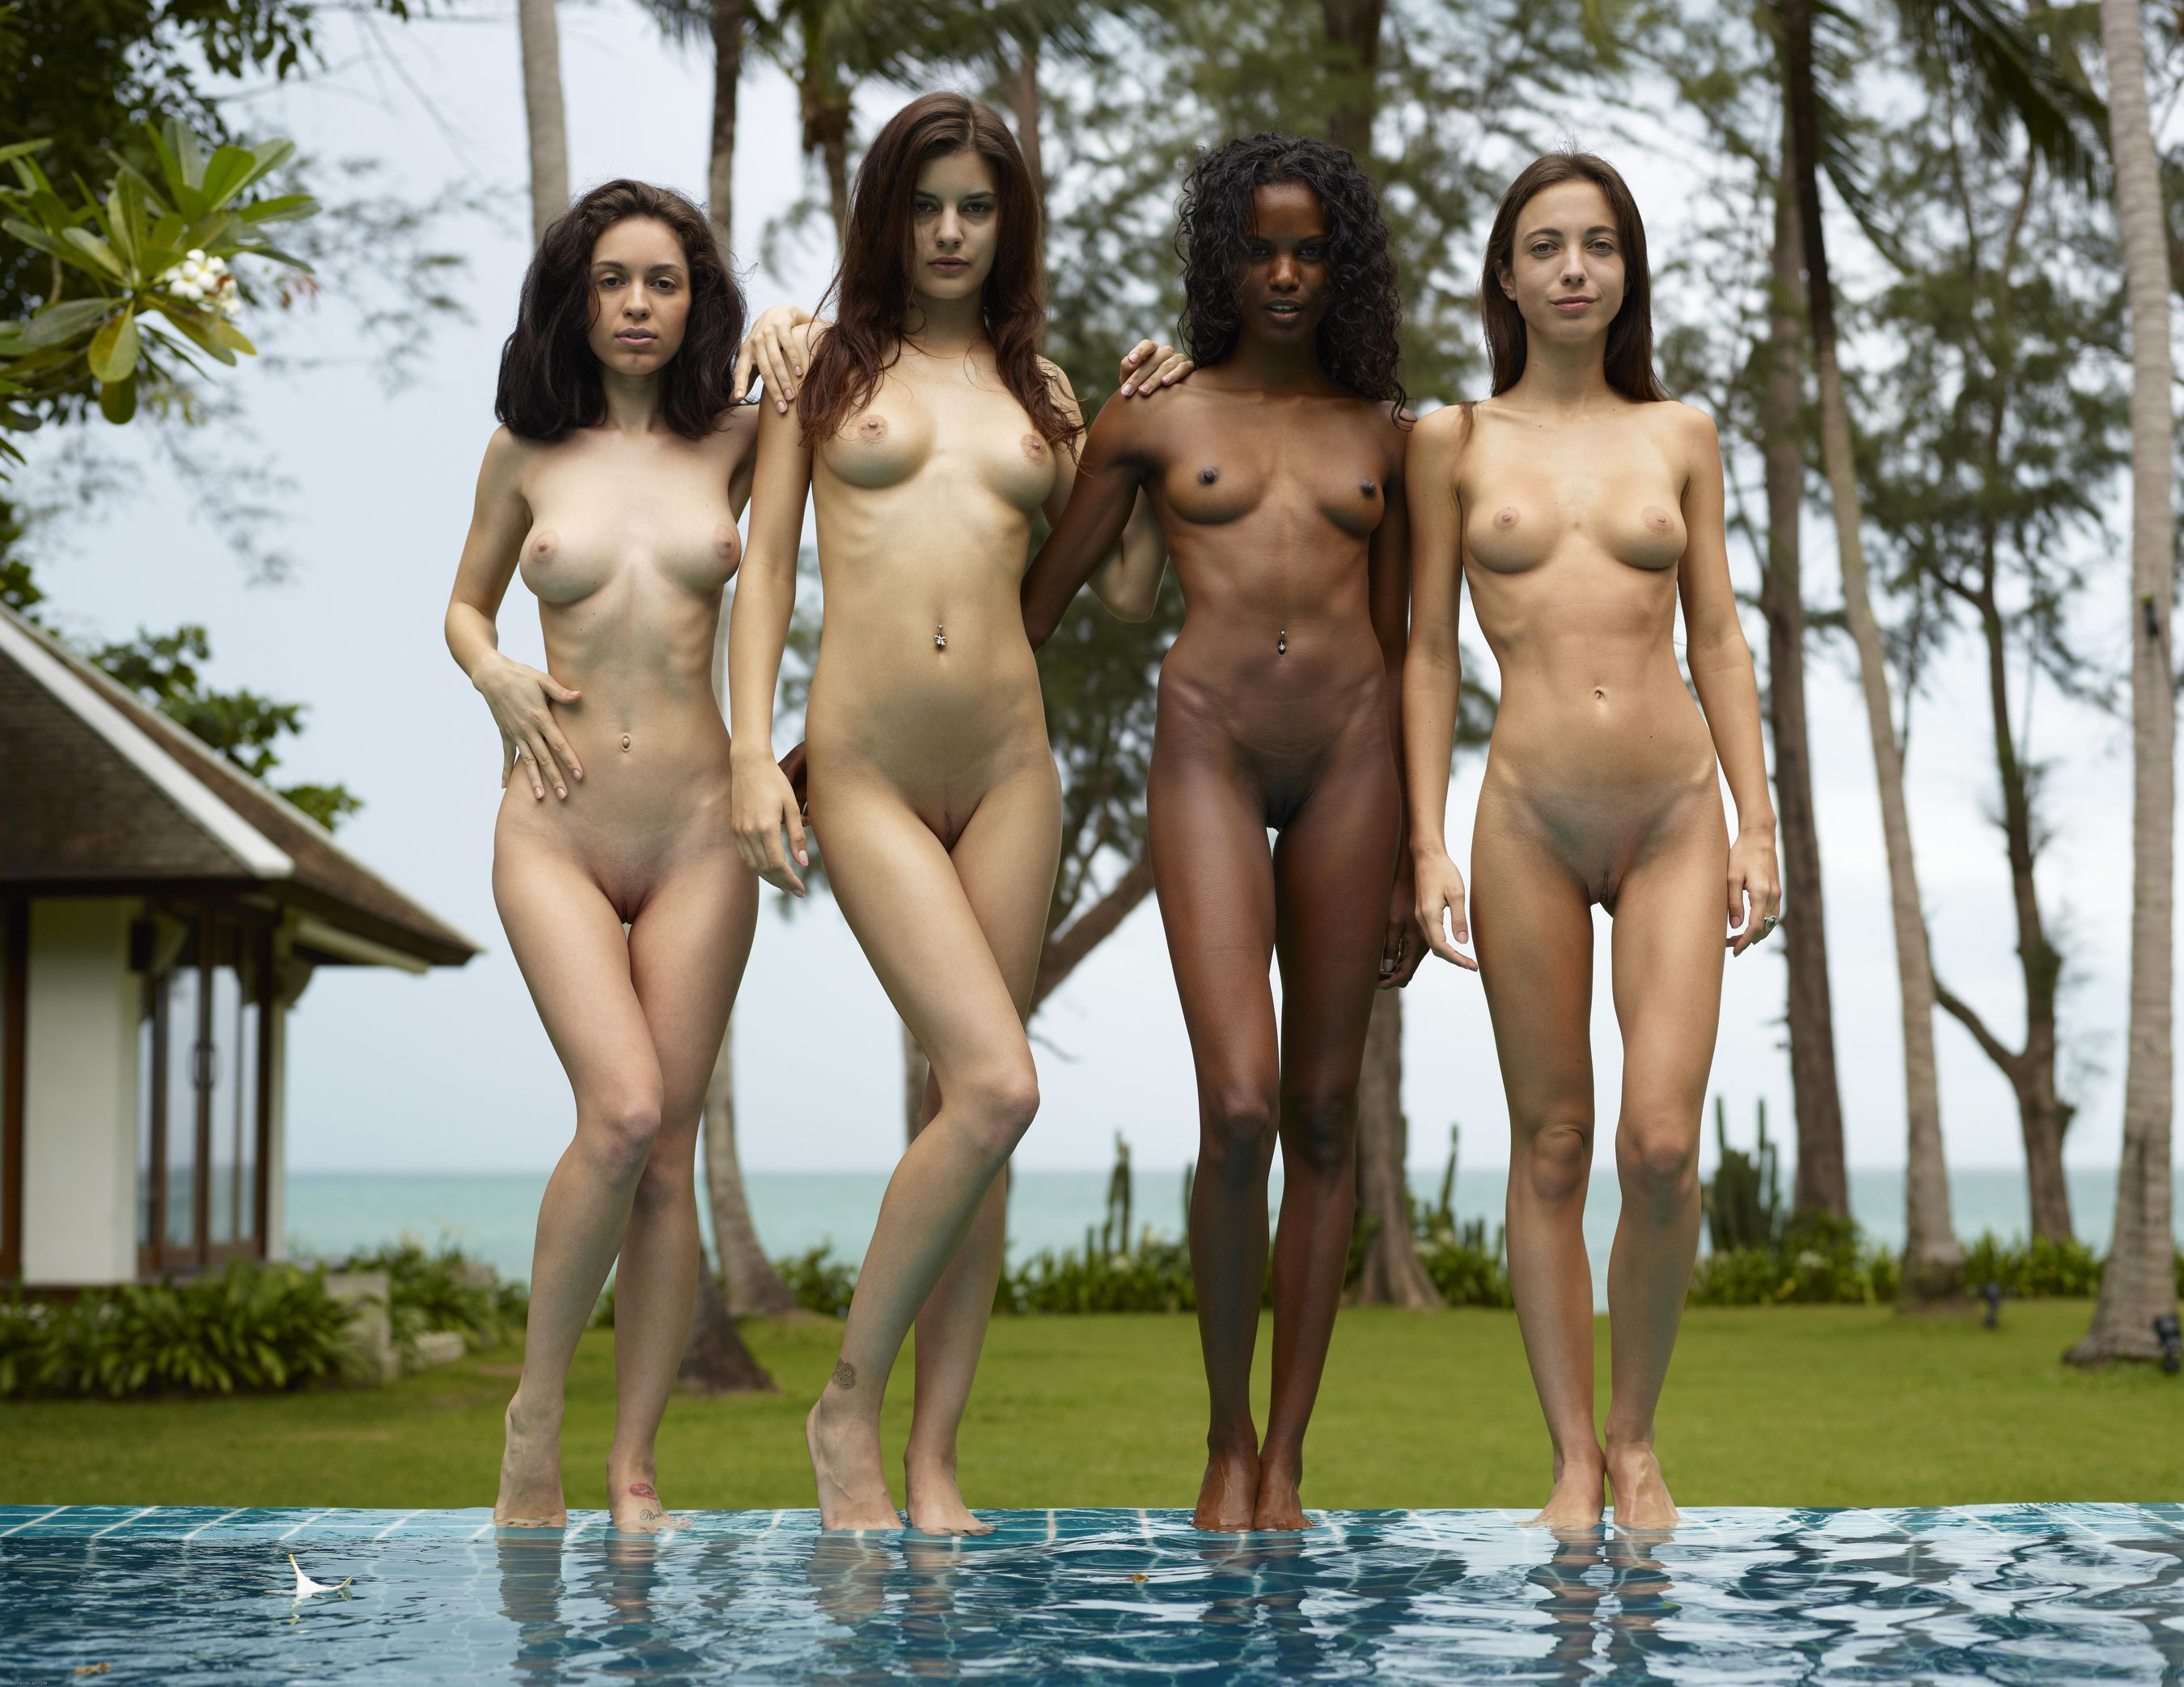 Four nude girls